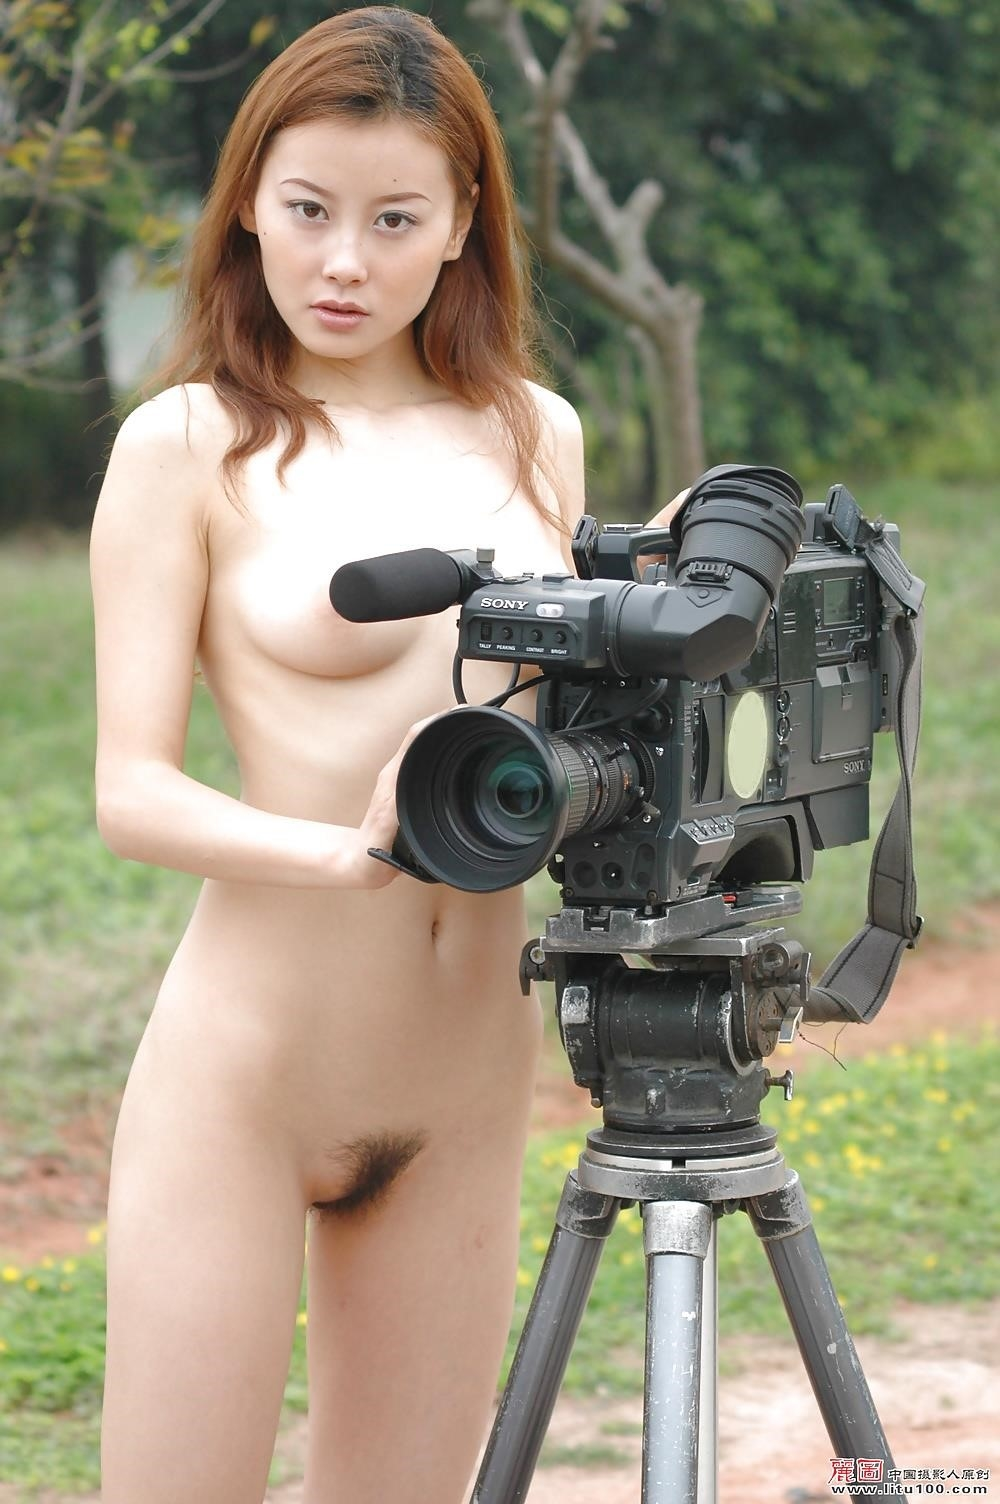 Best hd porn site ever-4690